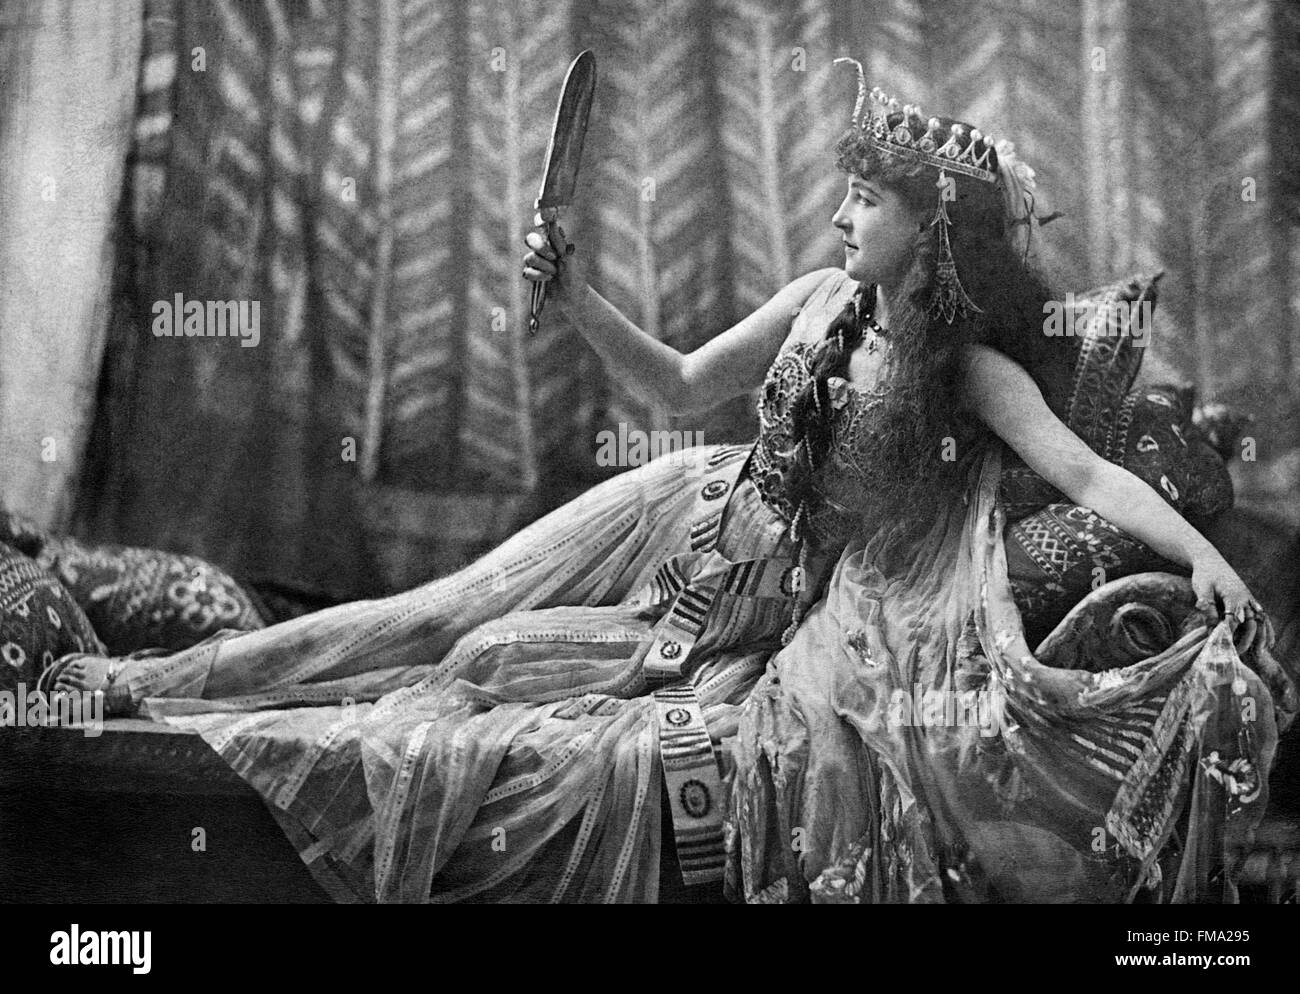 Lillie Langtry As Cleopatra 1891